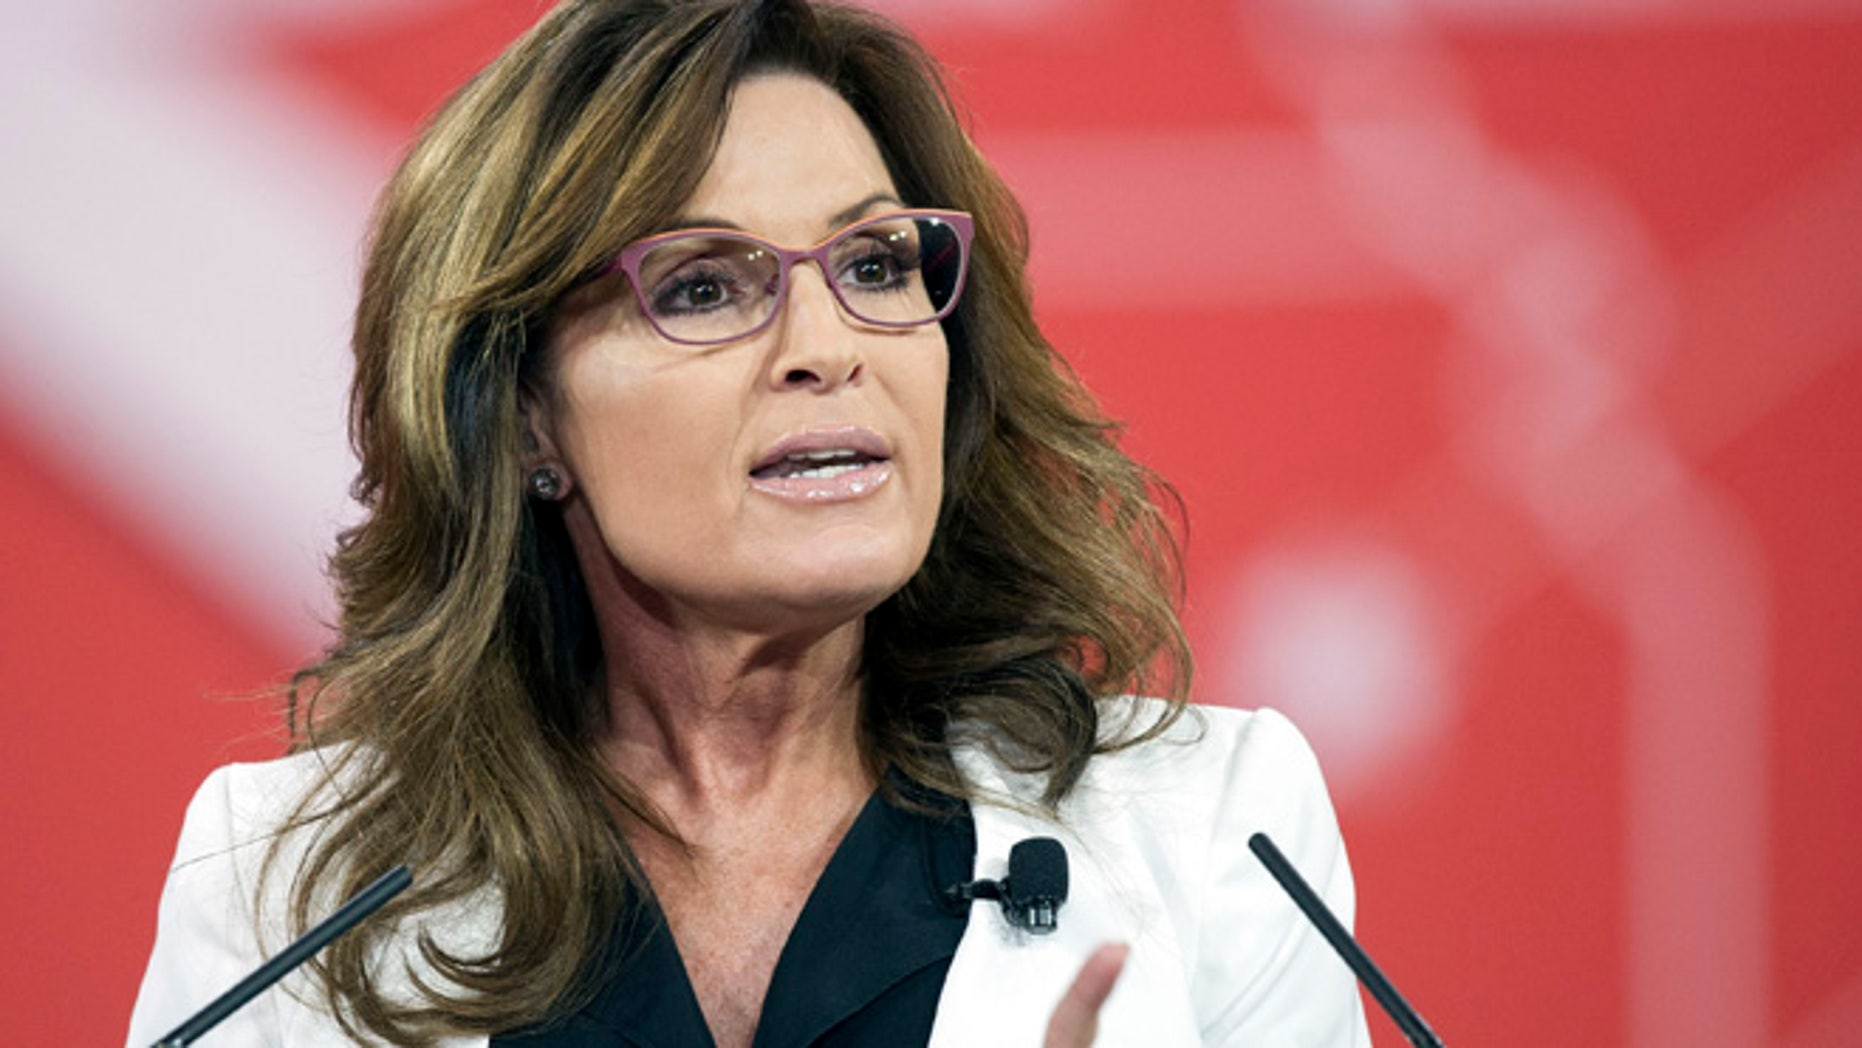 Feb. 26, 2015: Former Alaska Gov. Sarah Palin speaks during the Conservative Political Action Conference (CPAC) in National Harbor, Md. (AP)